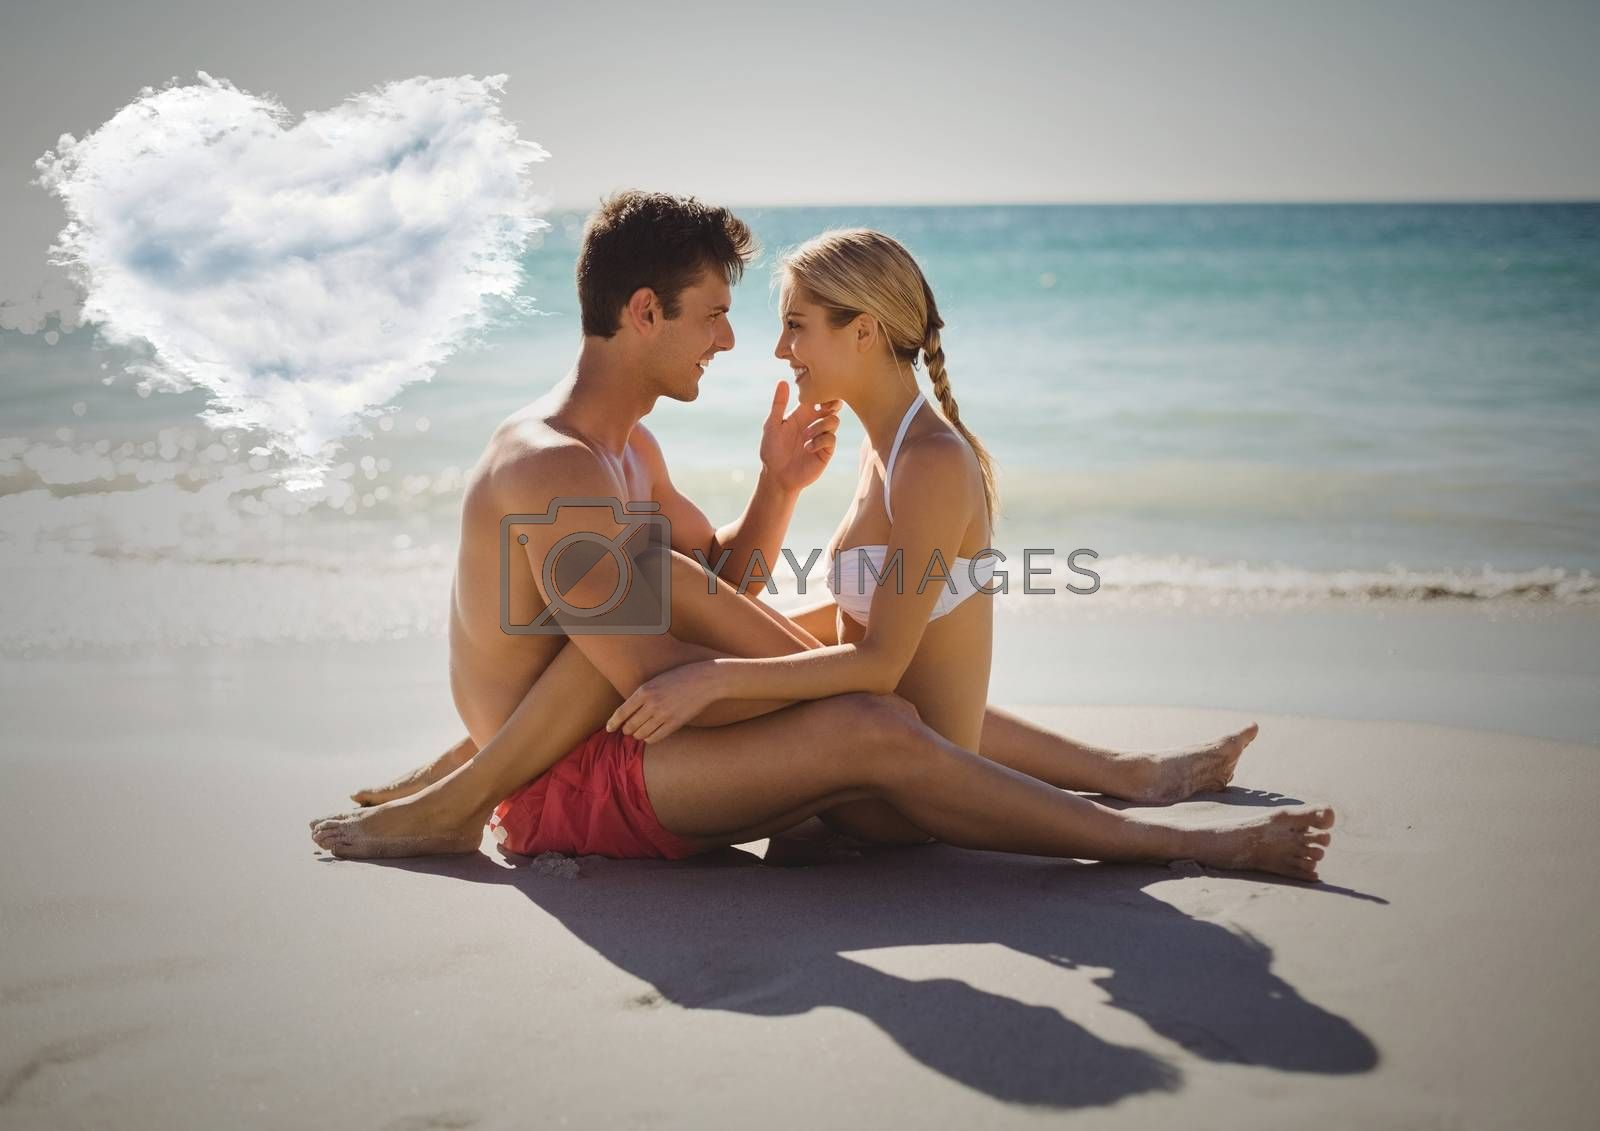 Composite images of romantic couple sitting on beach with heart cloud